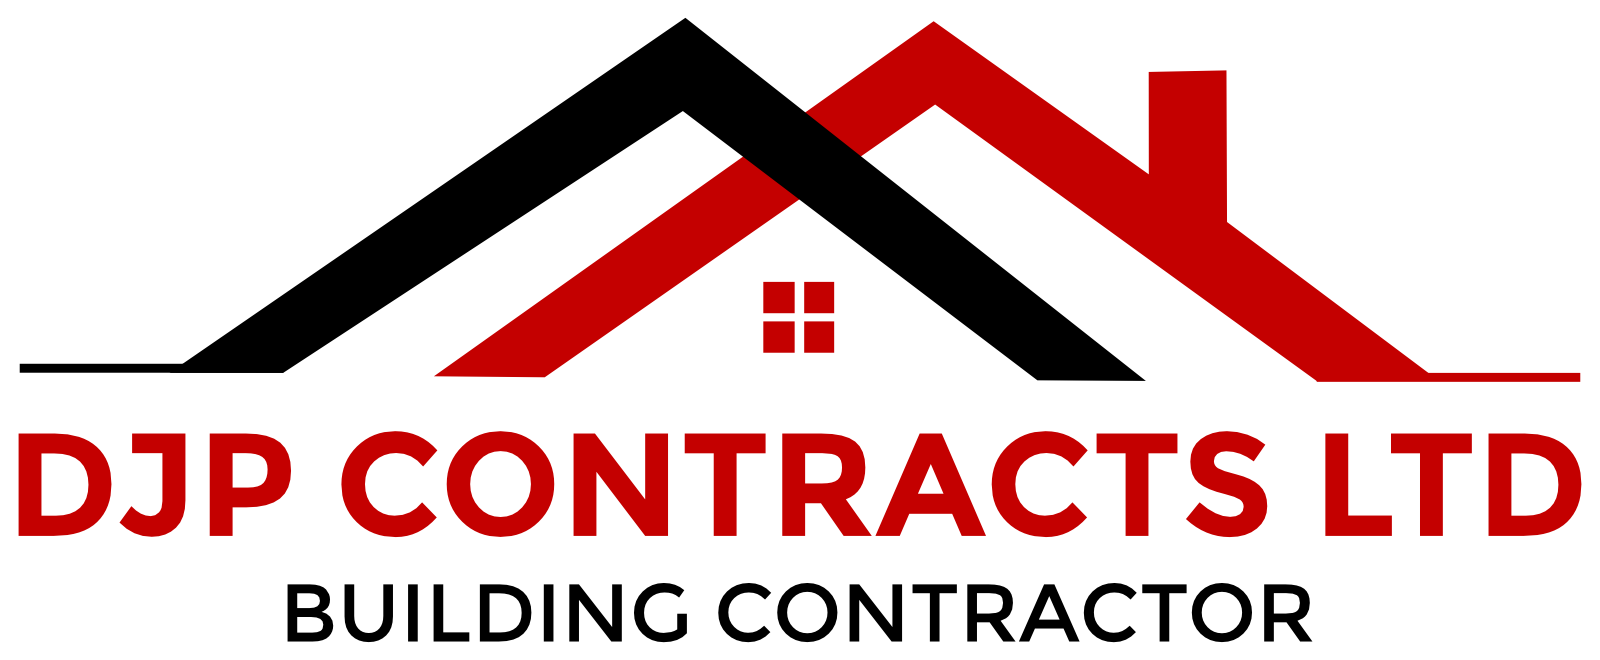 DJP Contracts Ltd